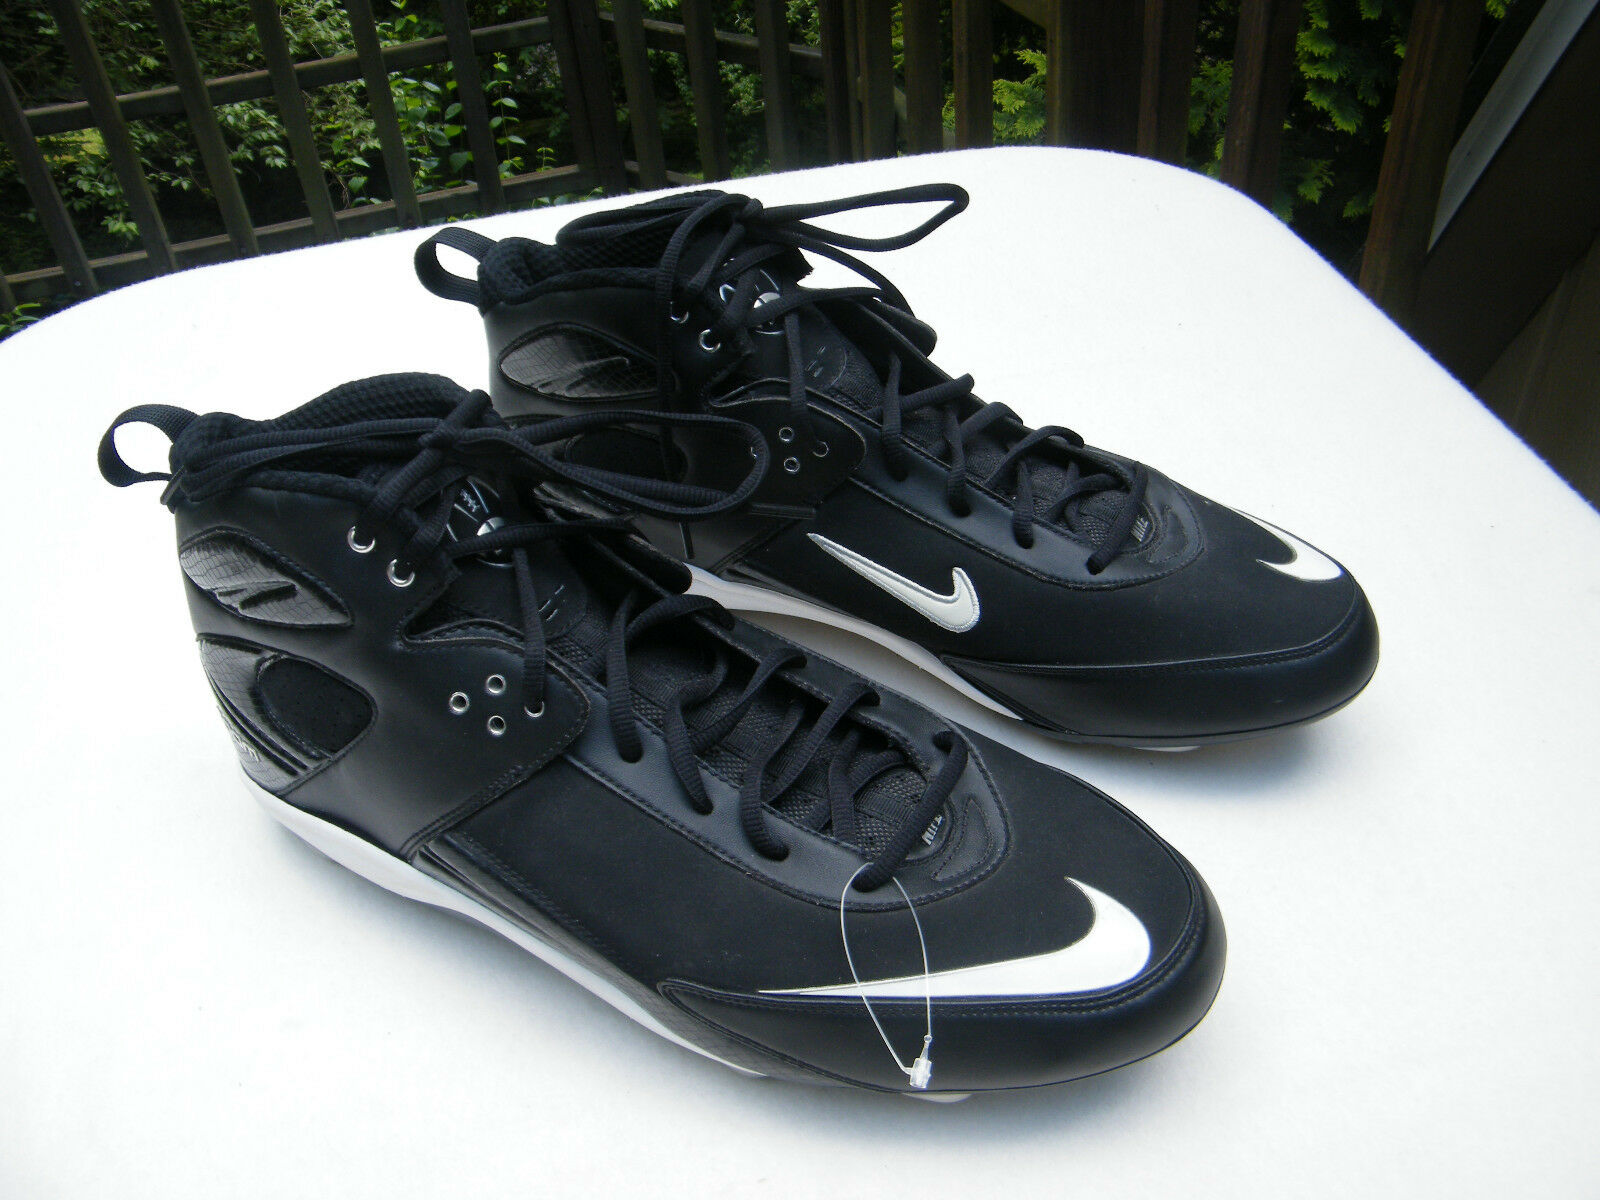 NEW NIKE Zoom Black & White Hi-Top Football shoes Size 16 (Cleats Not Included)